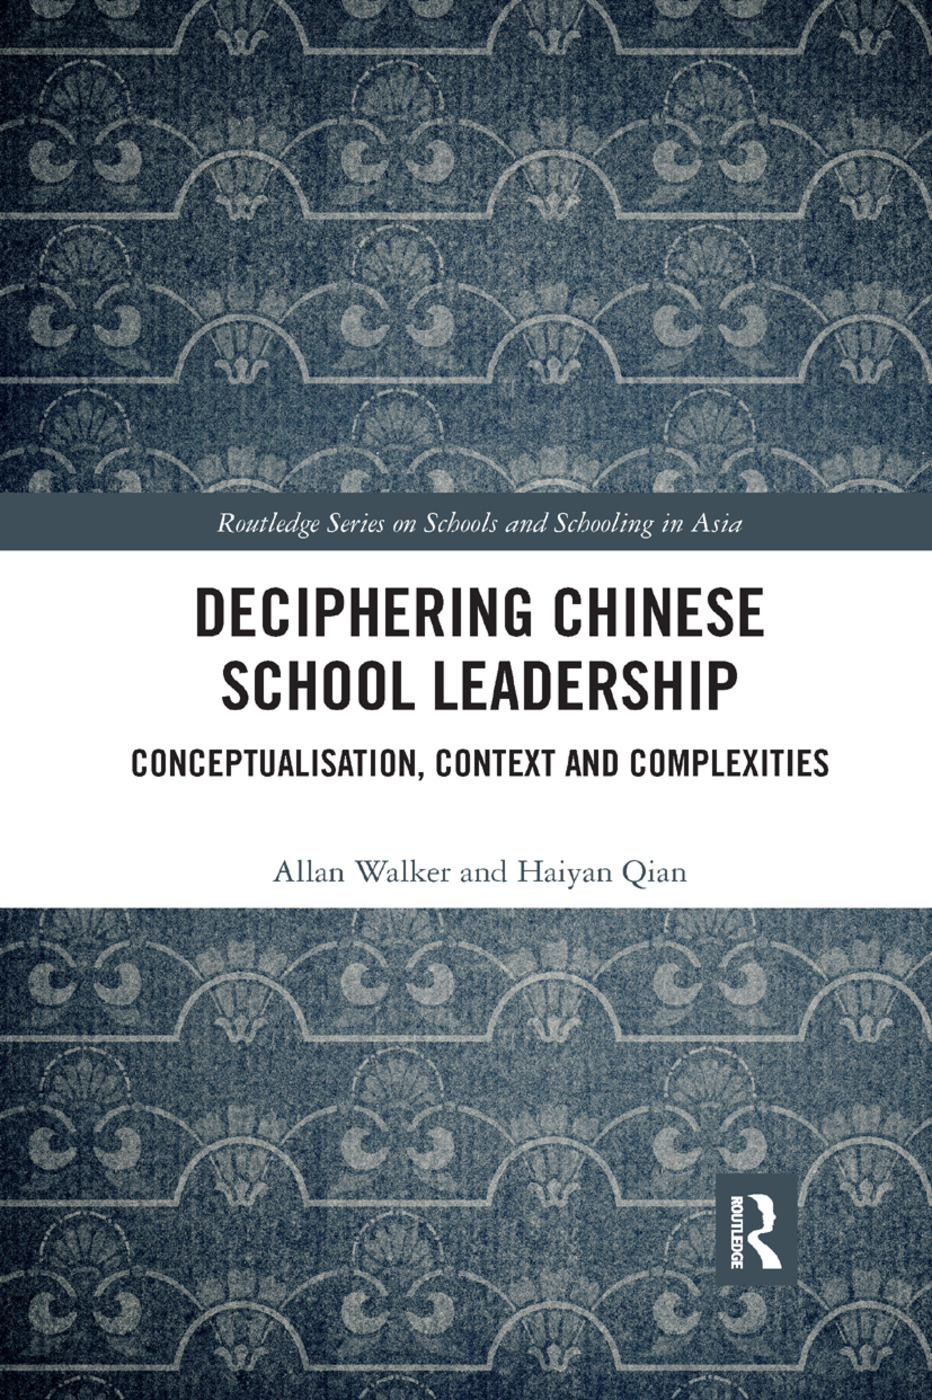 Deciphering Chinese School Leadership: Conceptualisation, Context and Complexities book cover